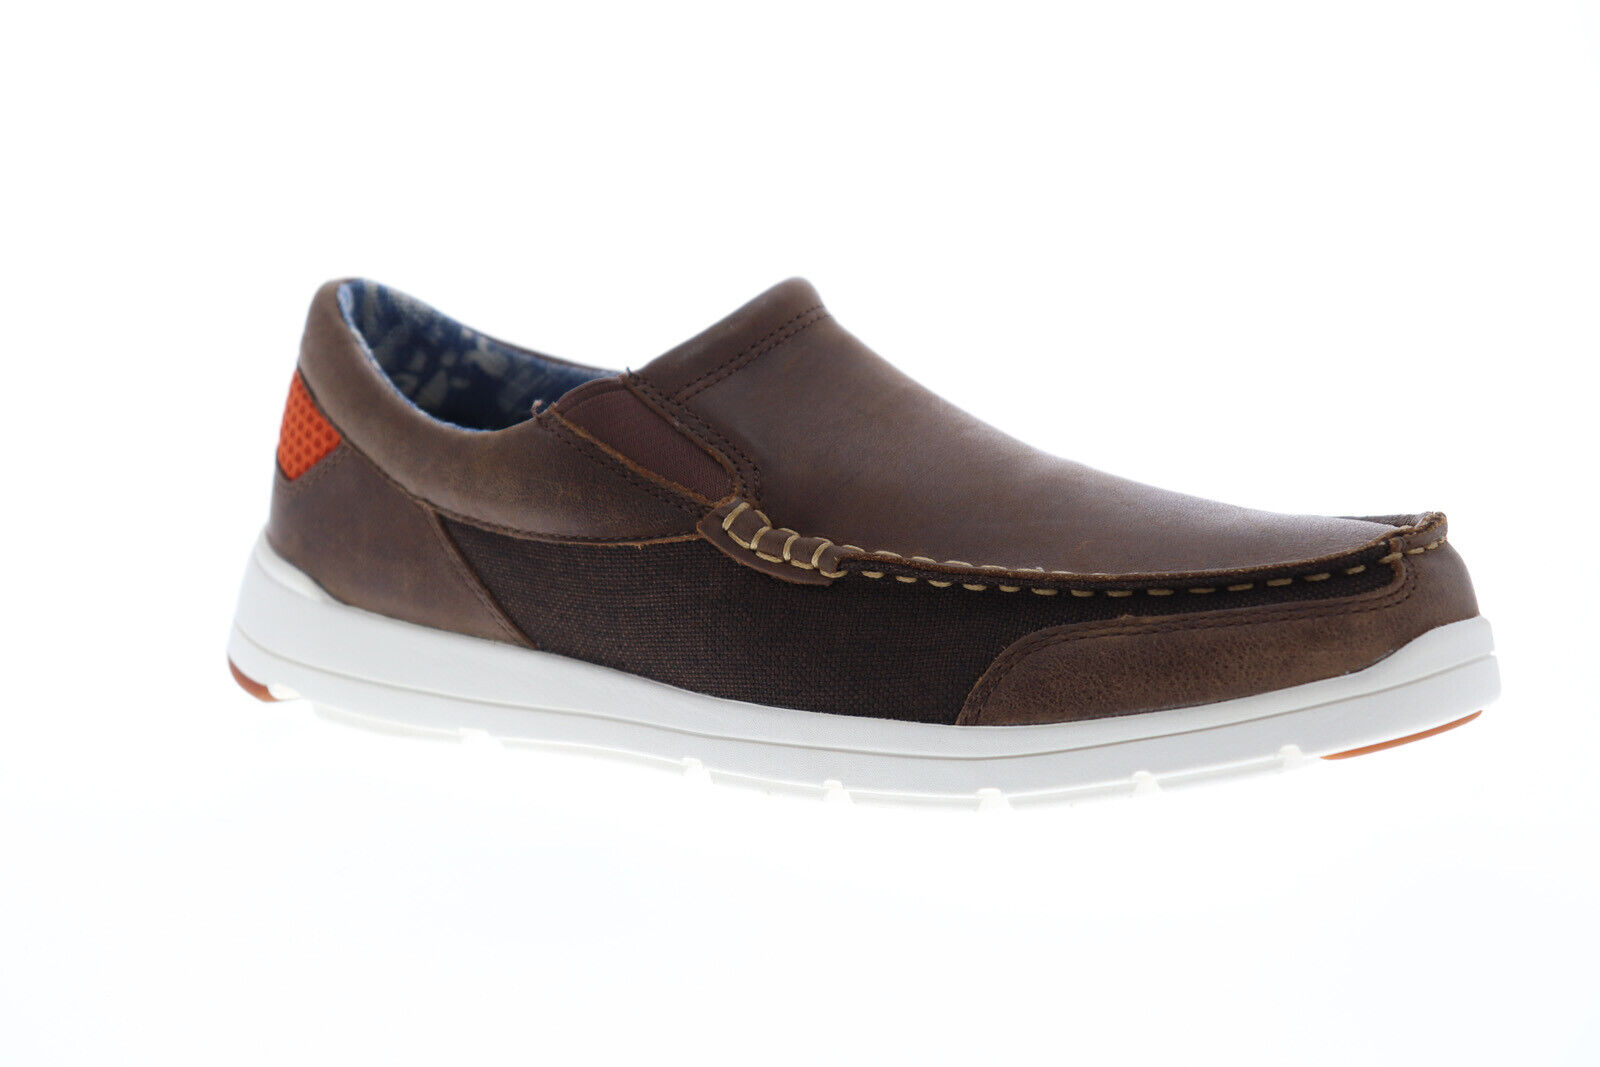 Tommy Bahama Paradise Around Slip On Mens Brown Casual Slip On Loafers Shoes